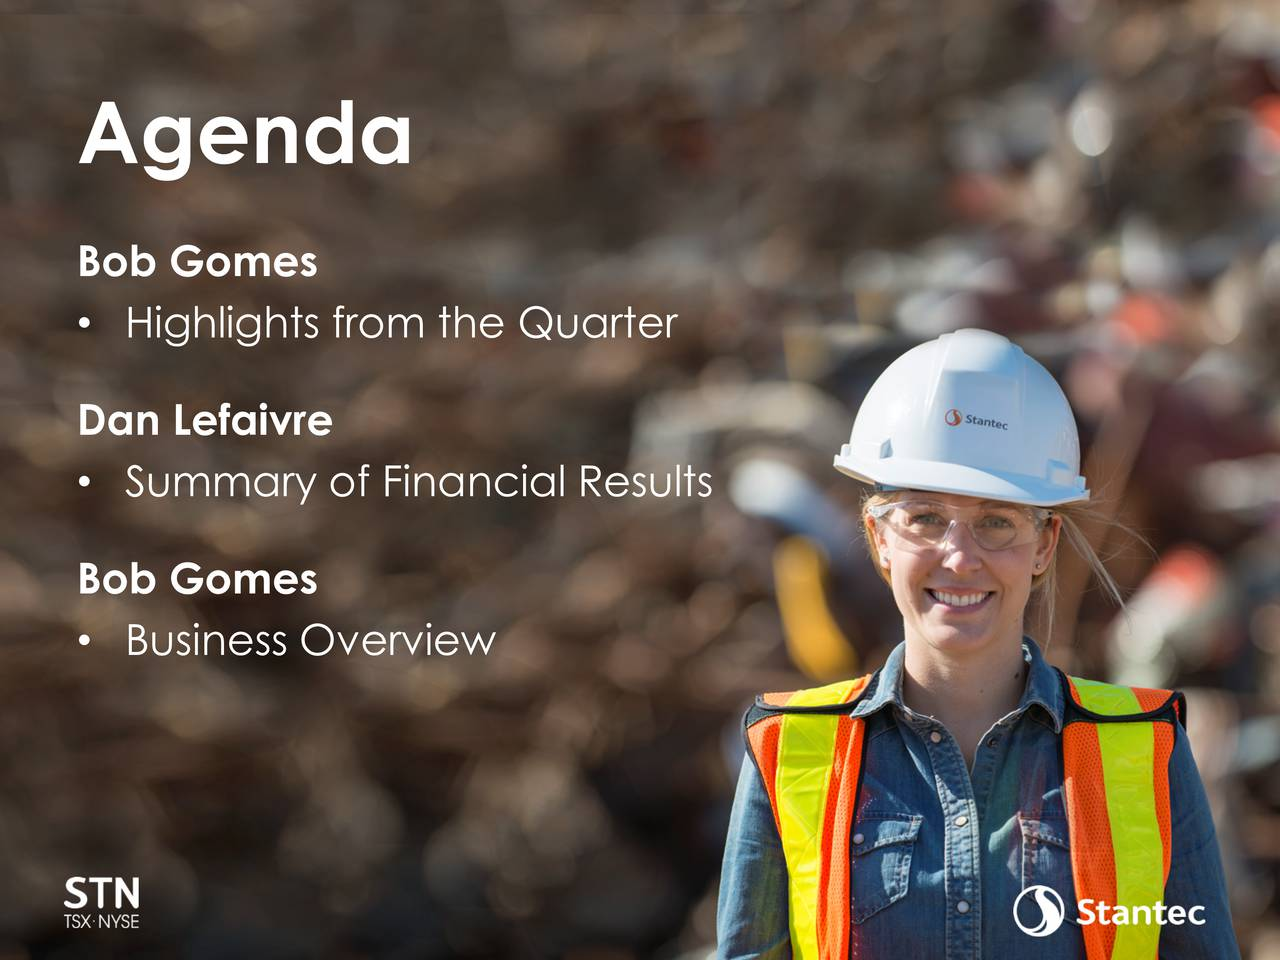 Bob Gomes Highlights from the Quarter Dan Lefaivre Summary of Financial Results Bob Gomes Business Overview